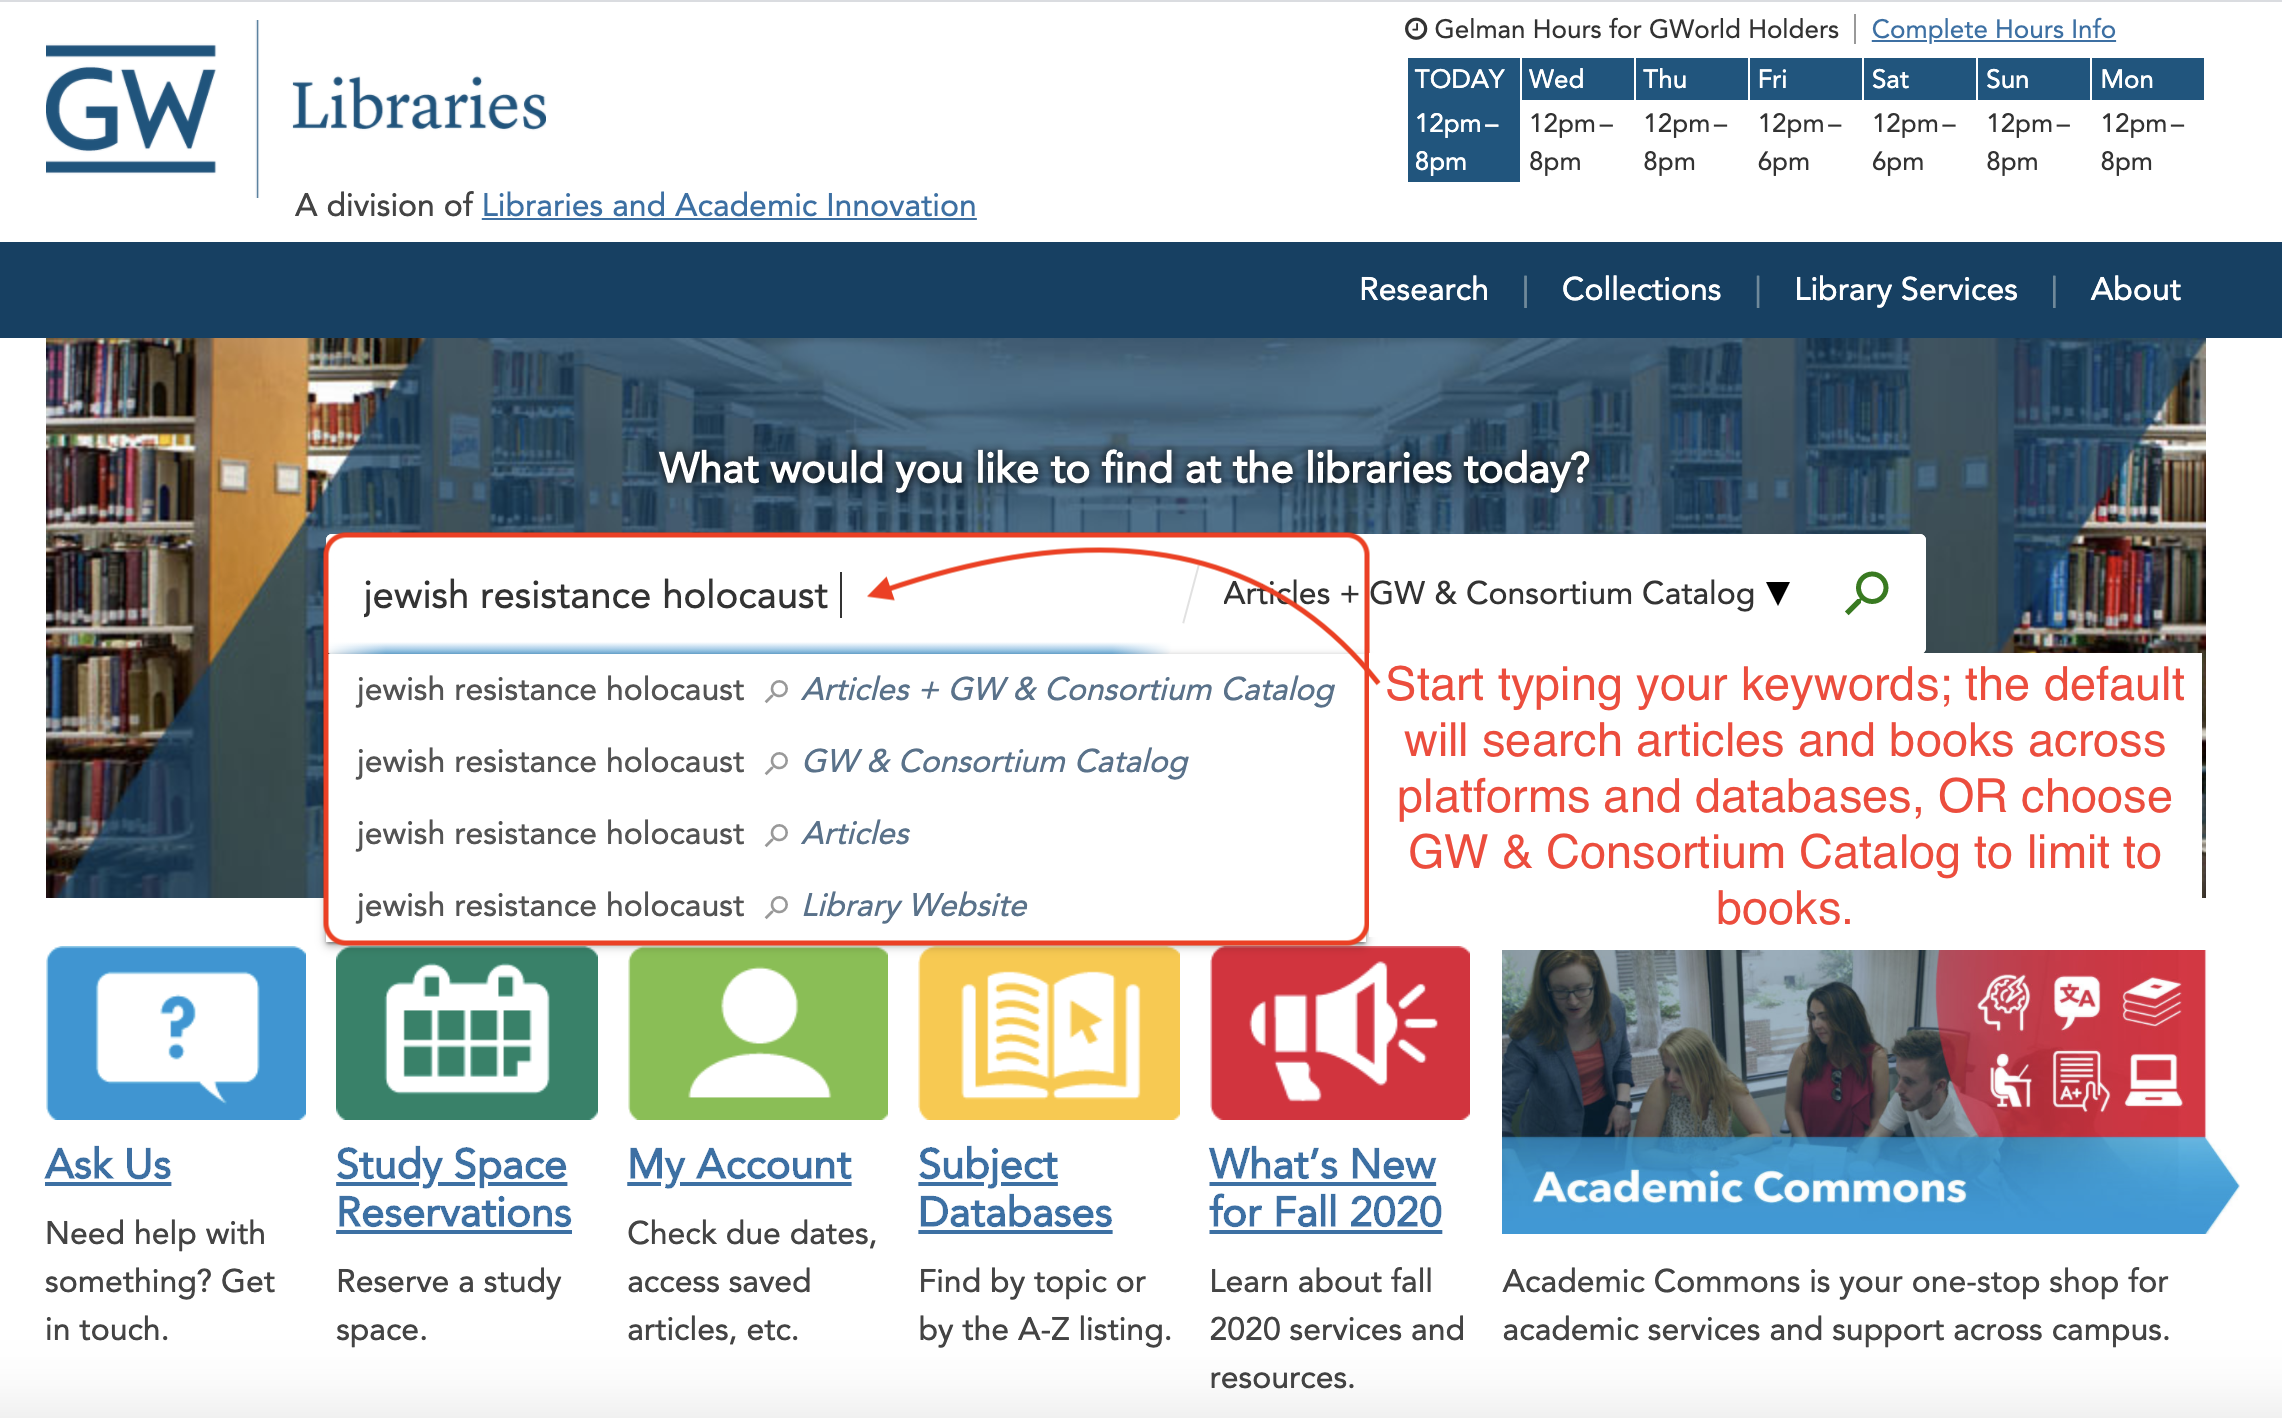 Picture of library catalog with the following caption: Start typing your keywords; the default will search articles and books across platforms and databases, OR choose GW & Consortium Catalog to limit to books.